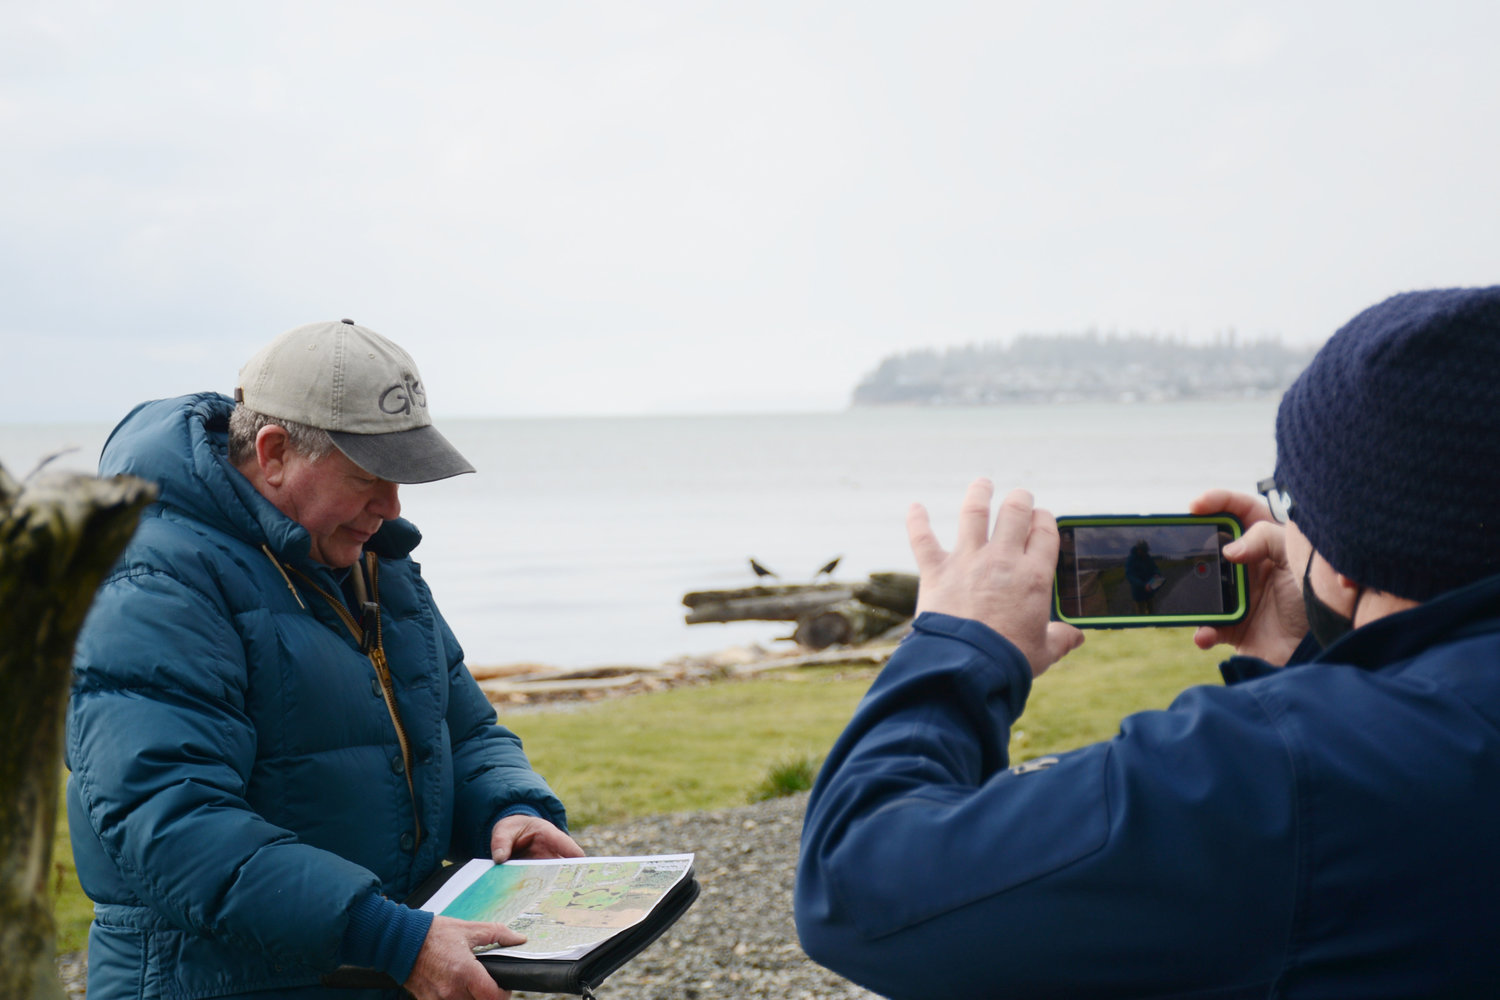 Local geologist Mike Price of Entrada/San Juan Inc. discusses the history and features of the Birch Bay berm on February 8. Price is working with Dan Lang of video editing service DLS Media to make a virtual tour of the unfinished berm.